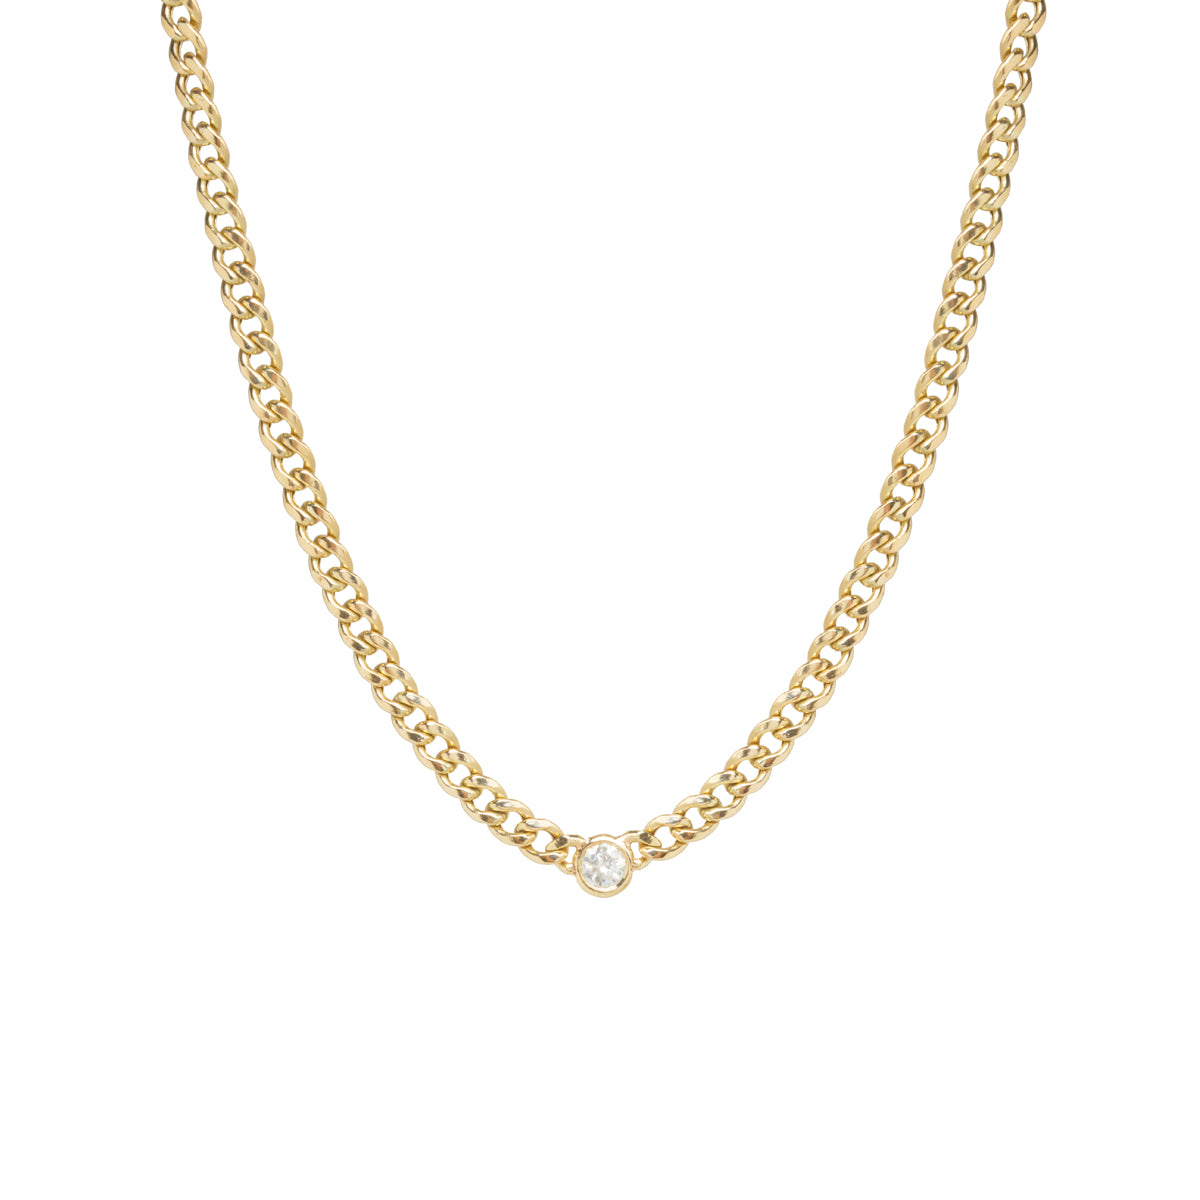 14k gold medium curb chain necklace with single floating diamond